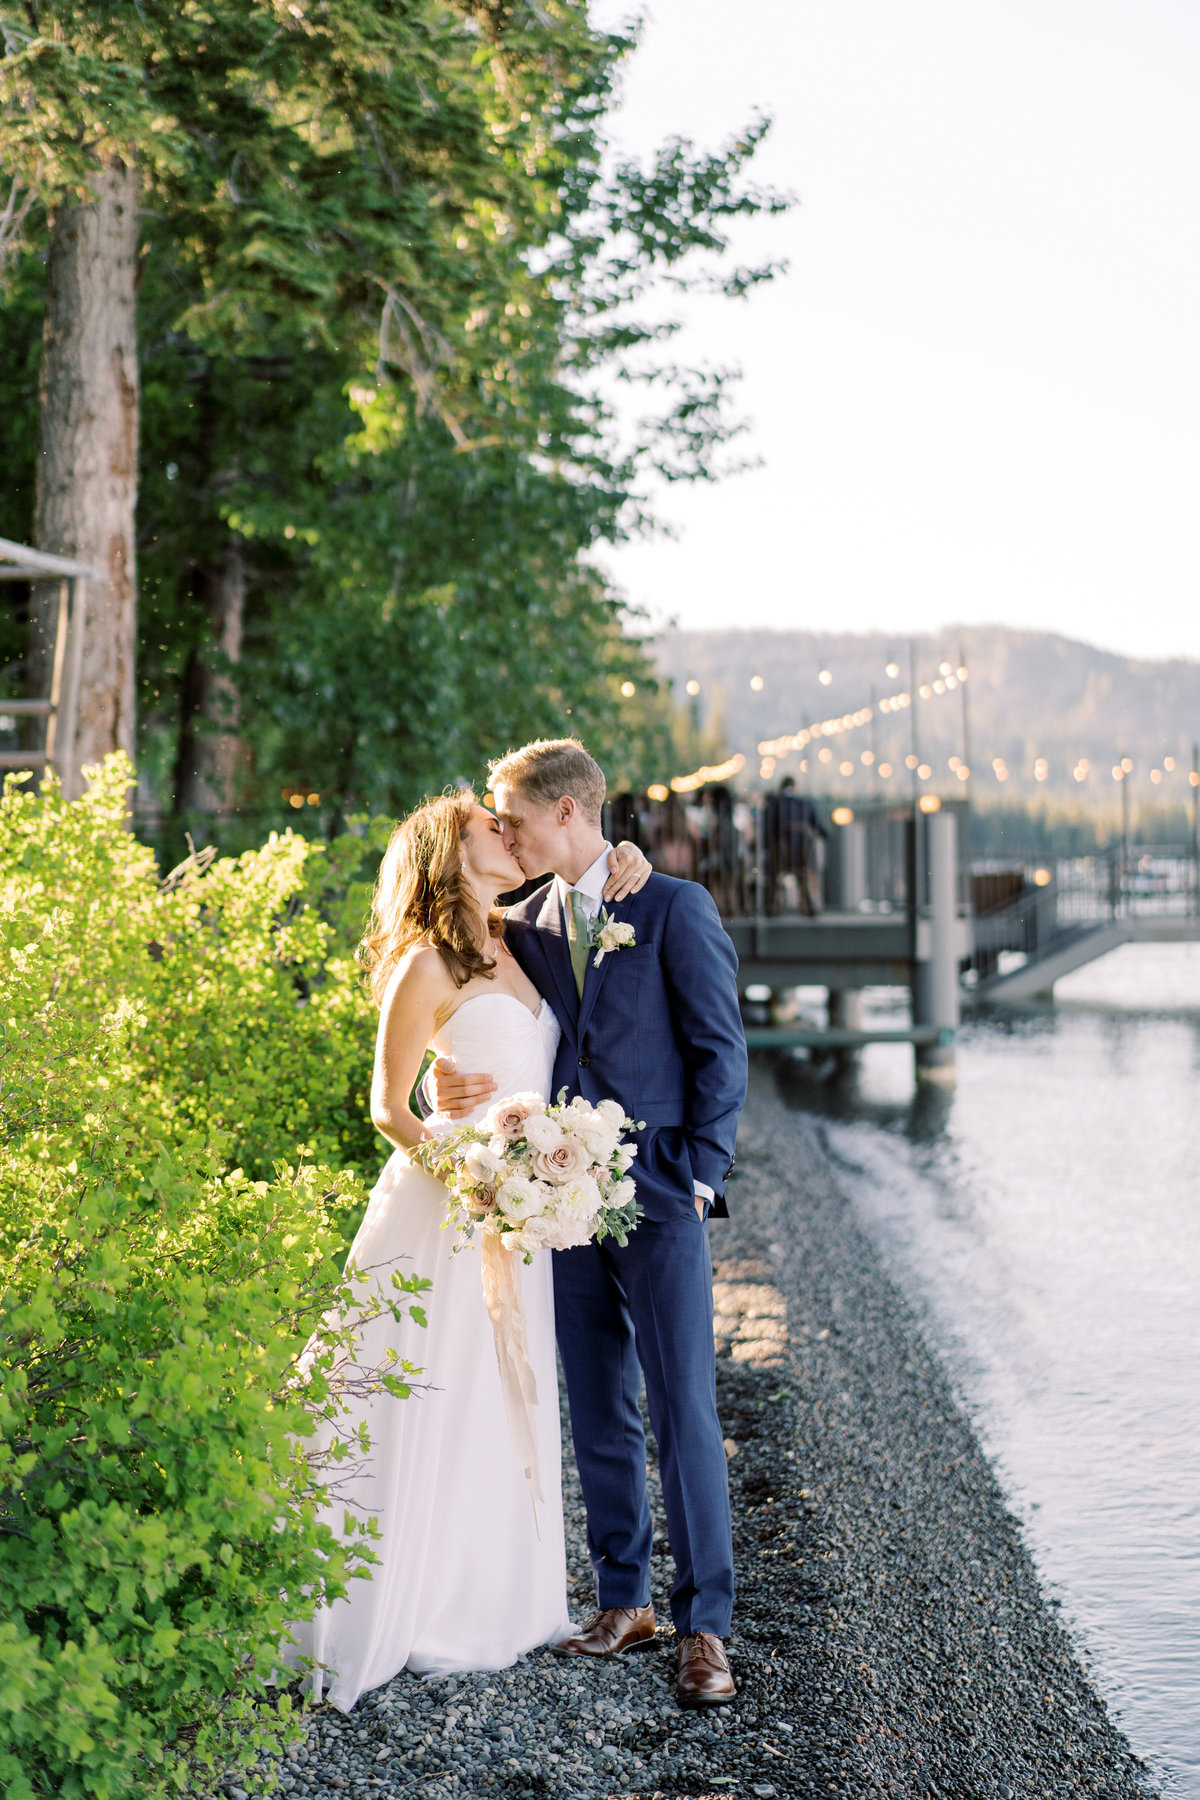 Alison + Will Tahoe West Shore Cafe Wedding Sneak Peeks | Cassie Valente Photography 0094